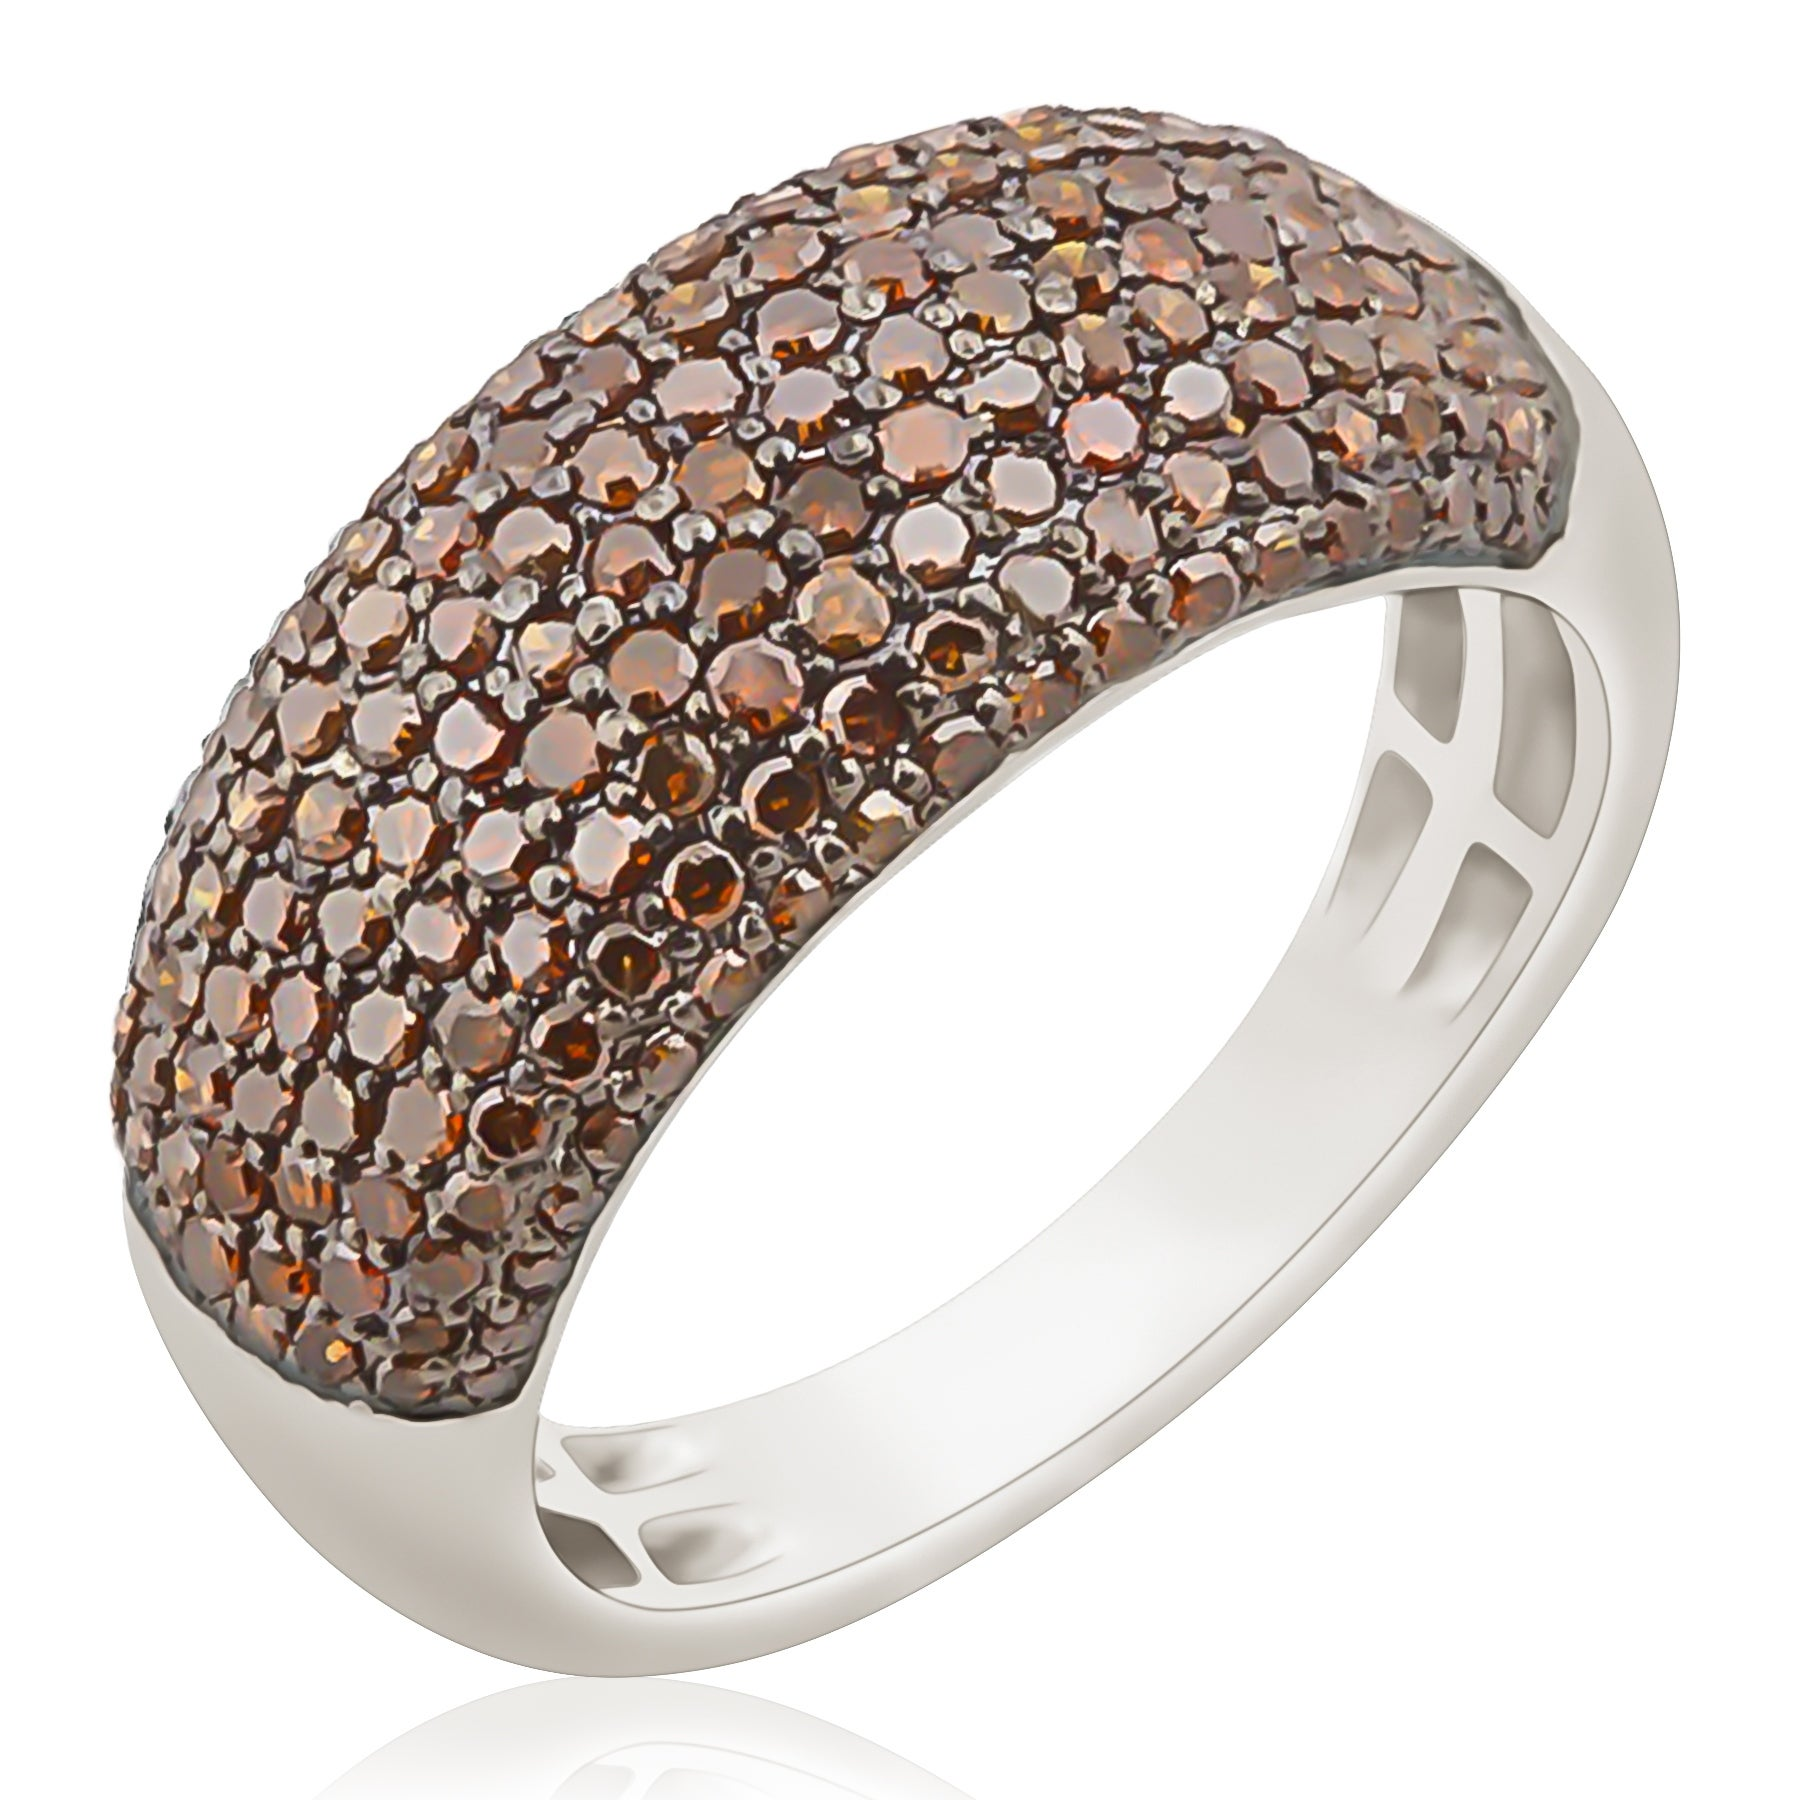 1.02 Carat Round Brilliant Cut Cognac Color Diamond Wedding Band - Thumbnail 0